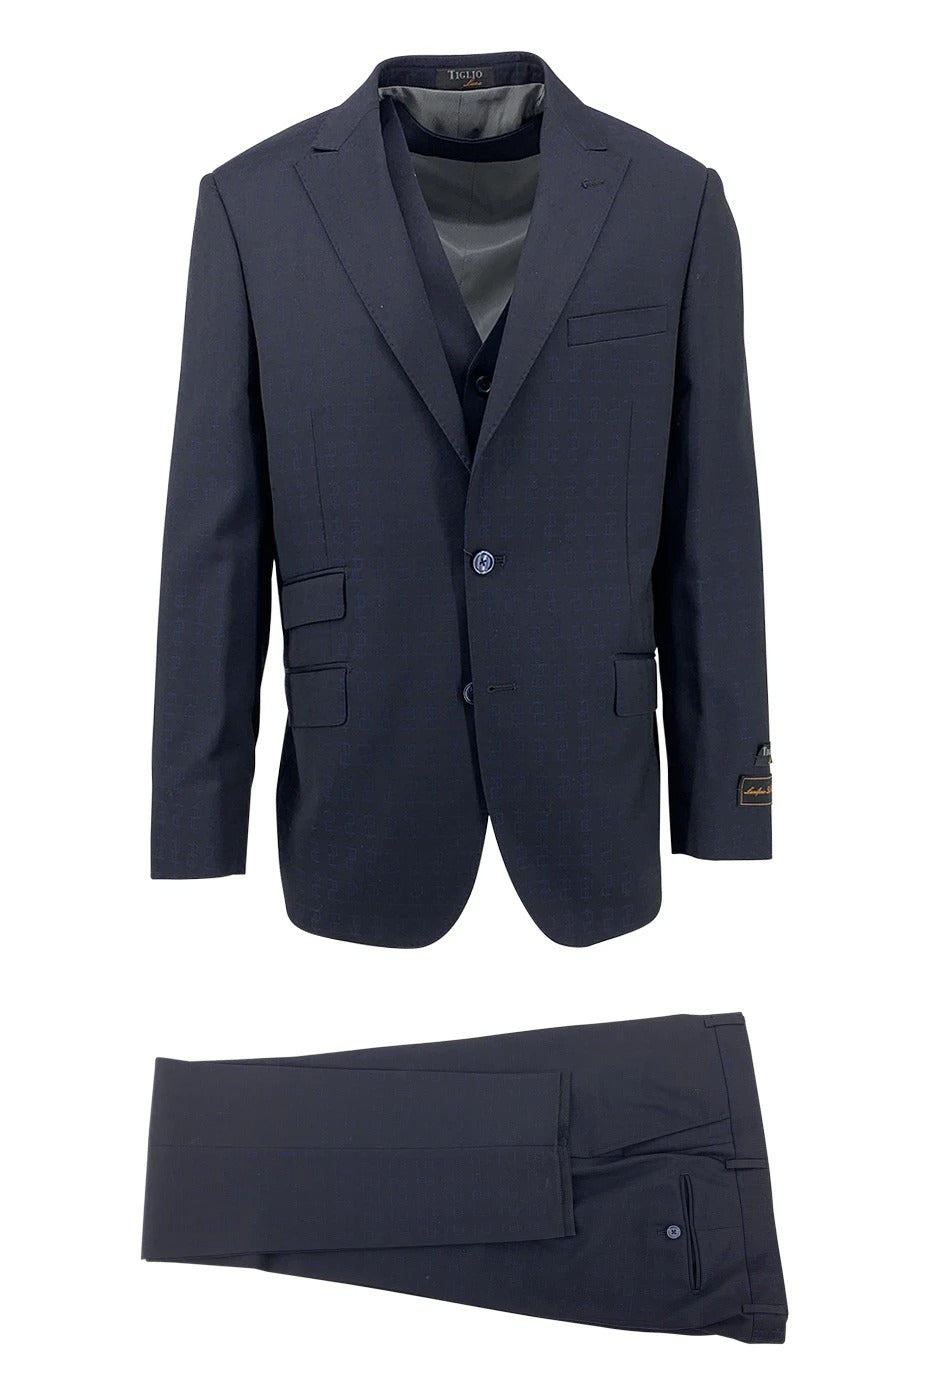 Tiglio Luxe Dark Navy with Blue Dollar Signs Design Barbera, Modern Fit Pure Wool Suit & Vest CR23410/3